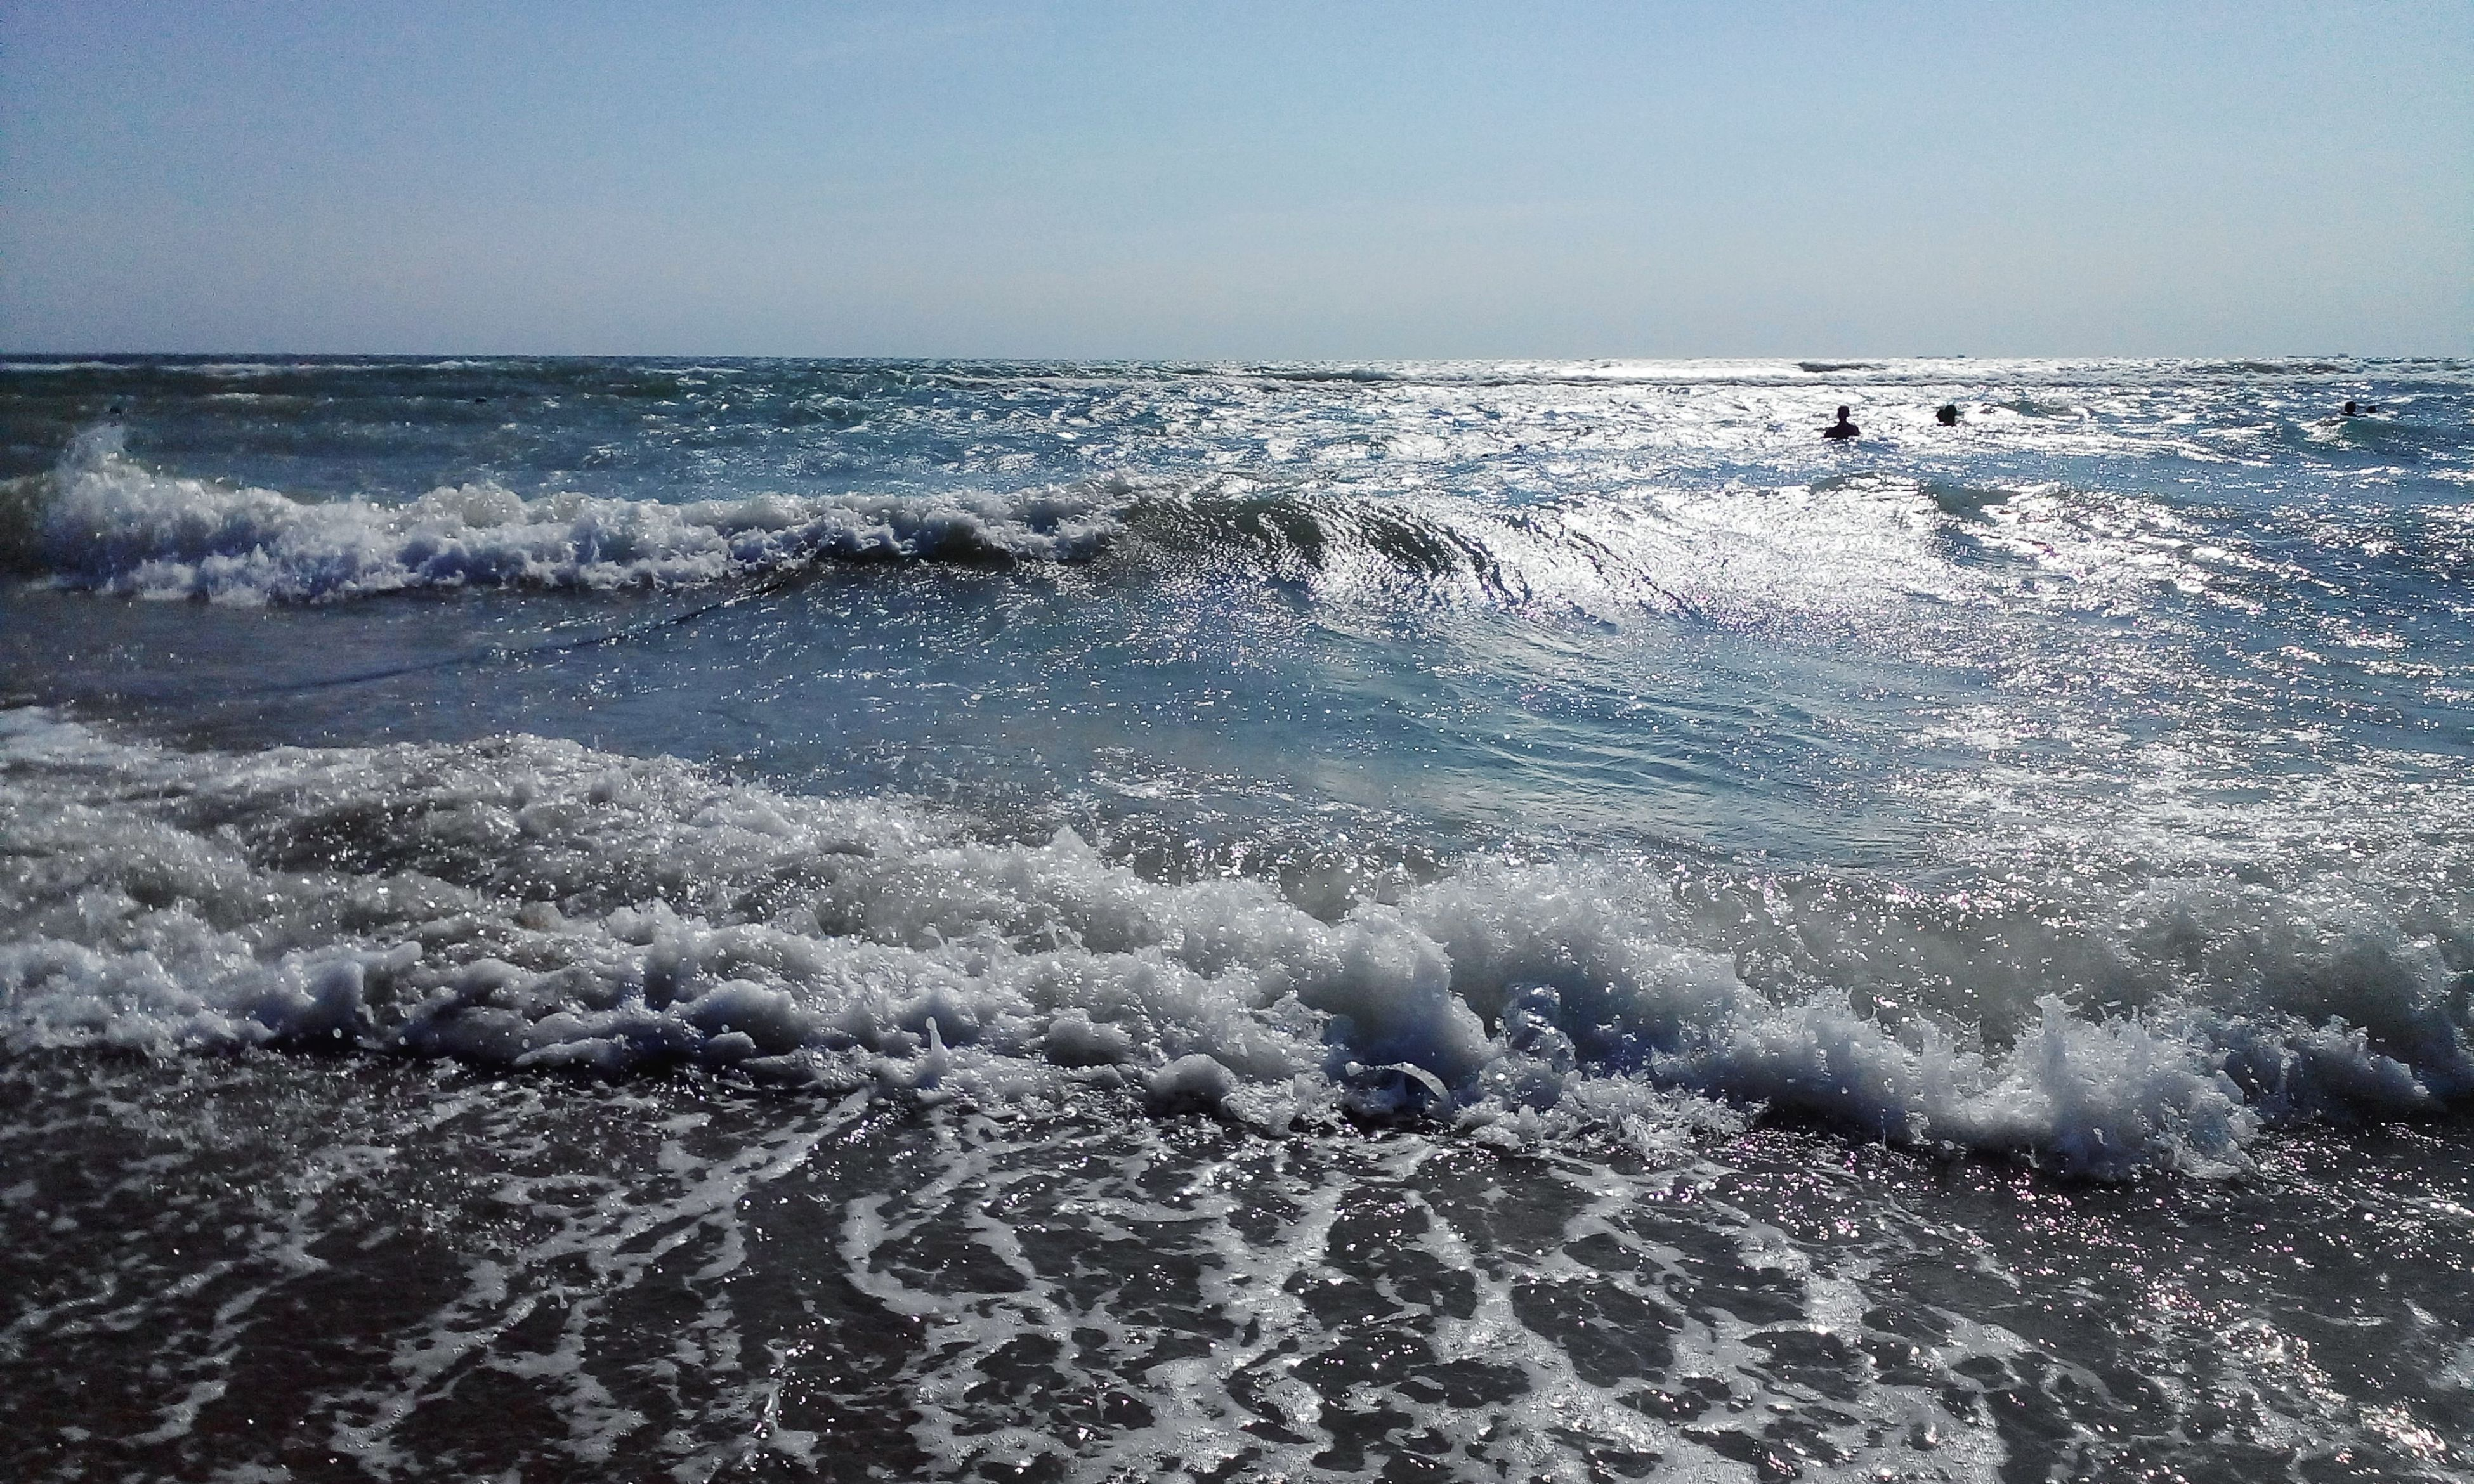 sea, water, horizon over water, clear sky, wave, beach, scenics, beauty in nature, tranquil scene, shore, tranquility, nature, surf, copy space, motion, idyllic, seascape, outdoors, splashing, sky